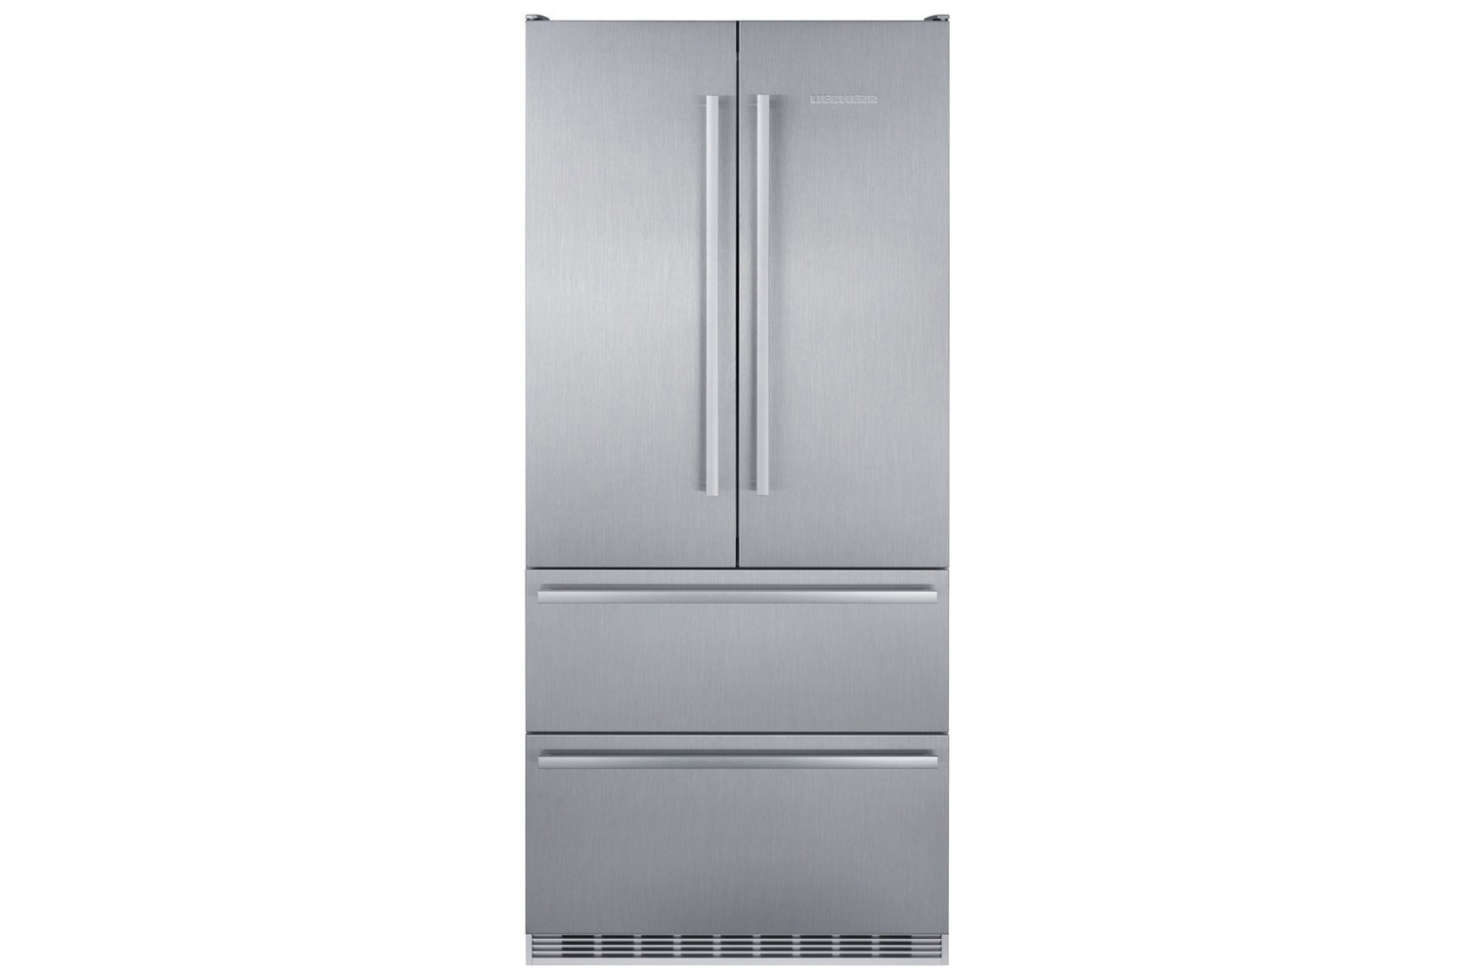 The Liebherr 36-Inch Counter-Depth 4-Door French Door Refrigerator (CBS2082) is the most shallow on our list at 24 inches deep. It's $6,419 at AJ Madison. Also available is the Liebherr 36-Inch Counter Depth Bottom-Freezer Refrigerator (CS2080) with a single door and two lower drawers is $5,349 at AJ Madison.